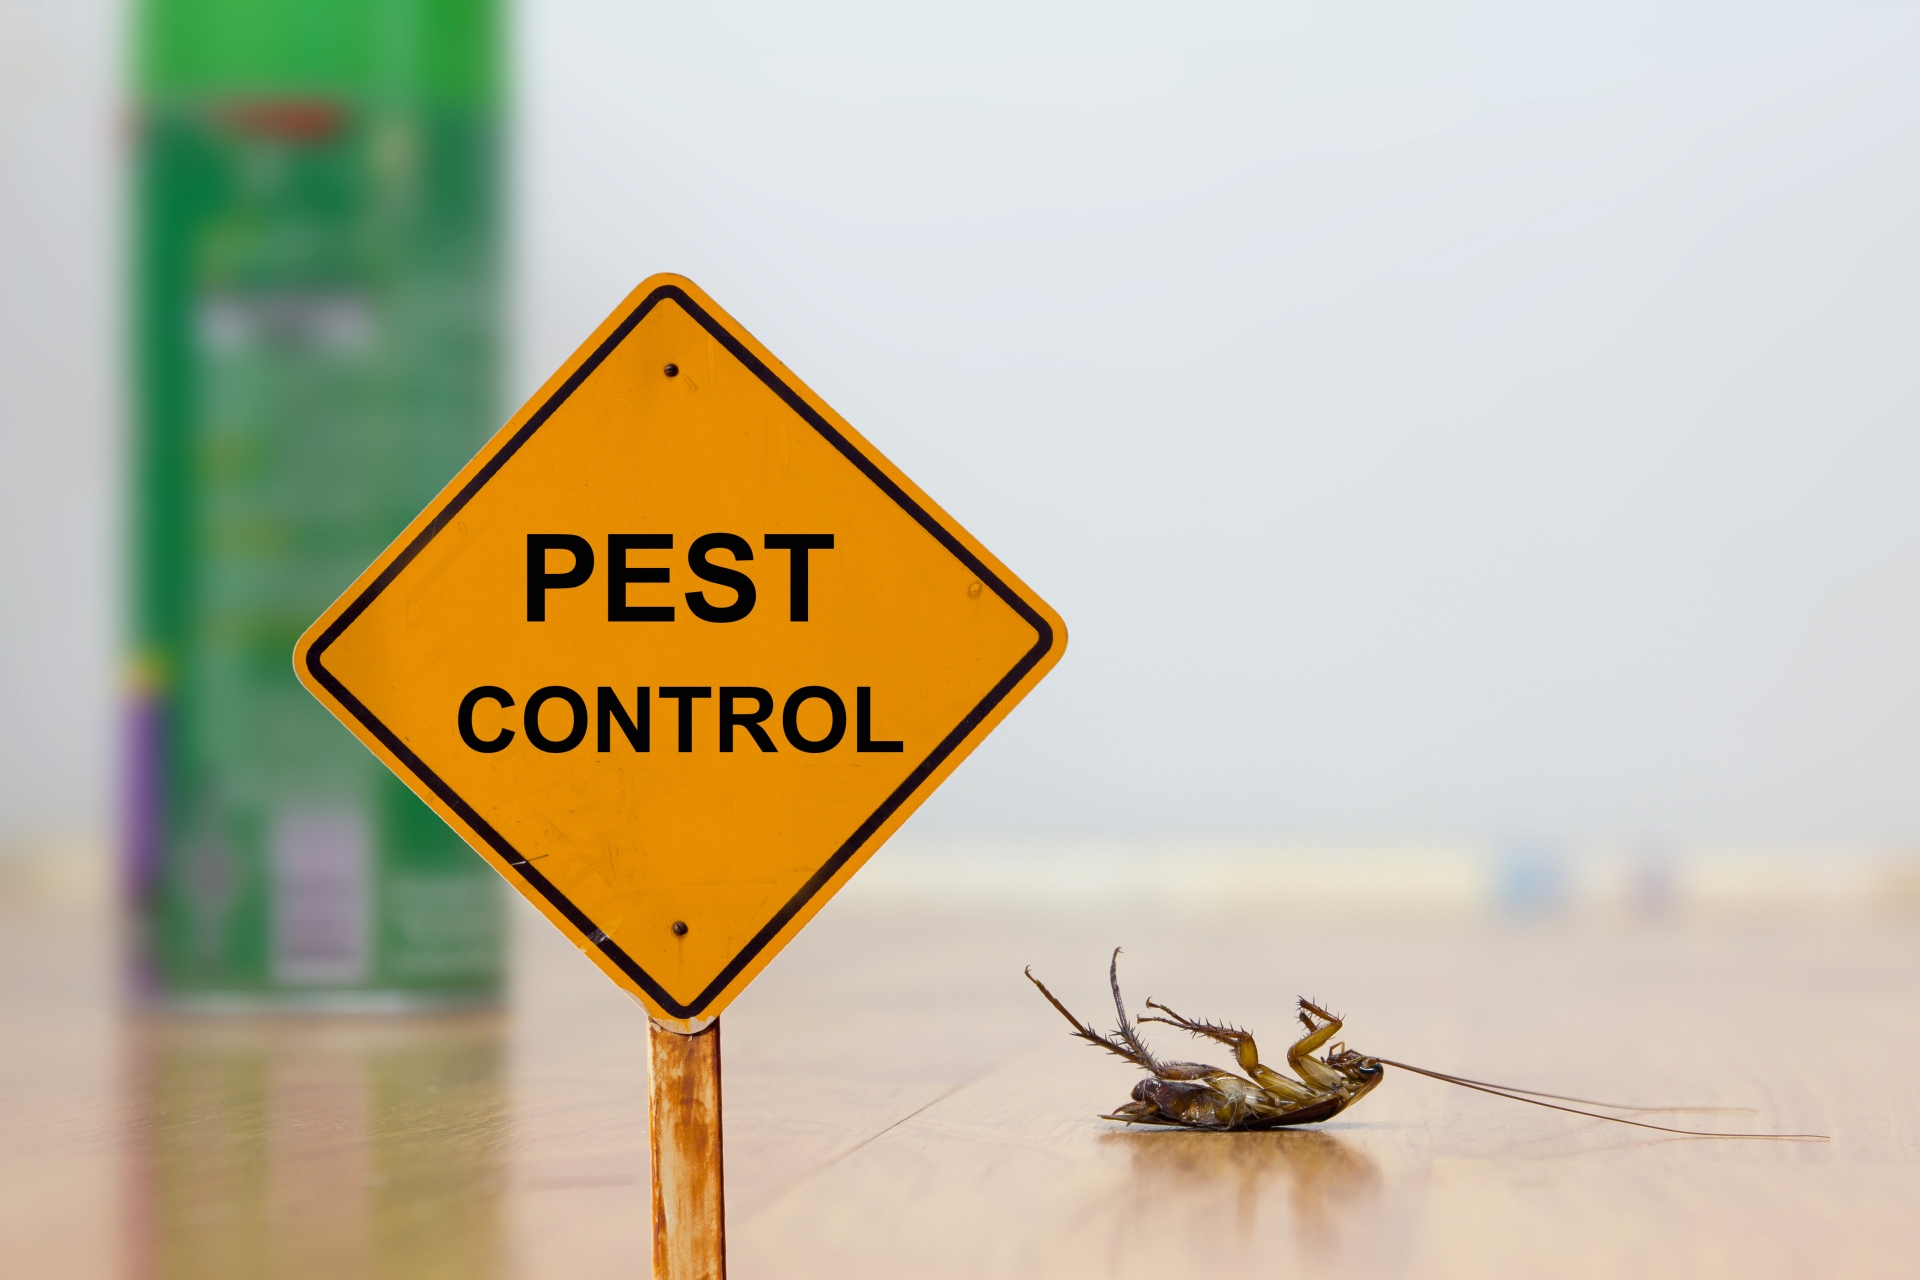 24 Hour Pest Control, Pest Control in London. Call Now 020 3519 0469